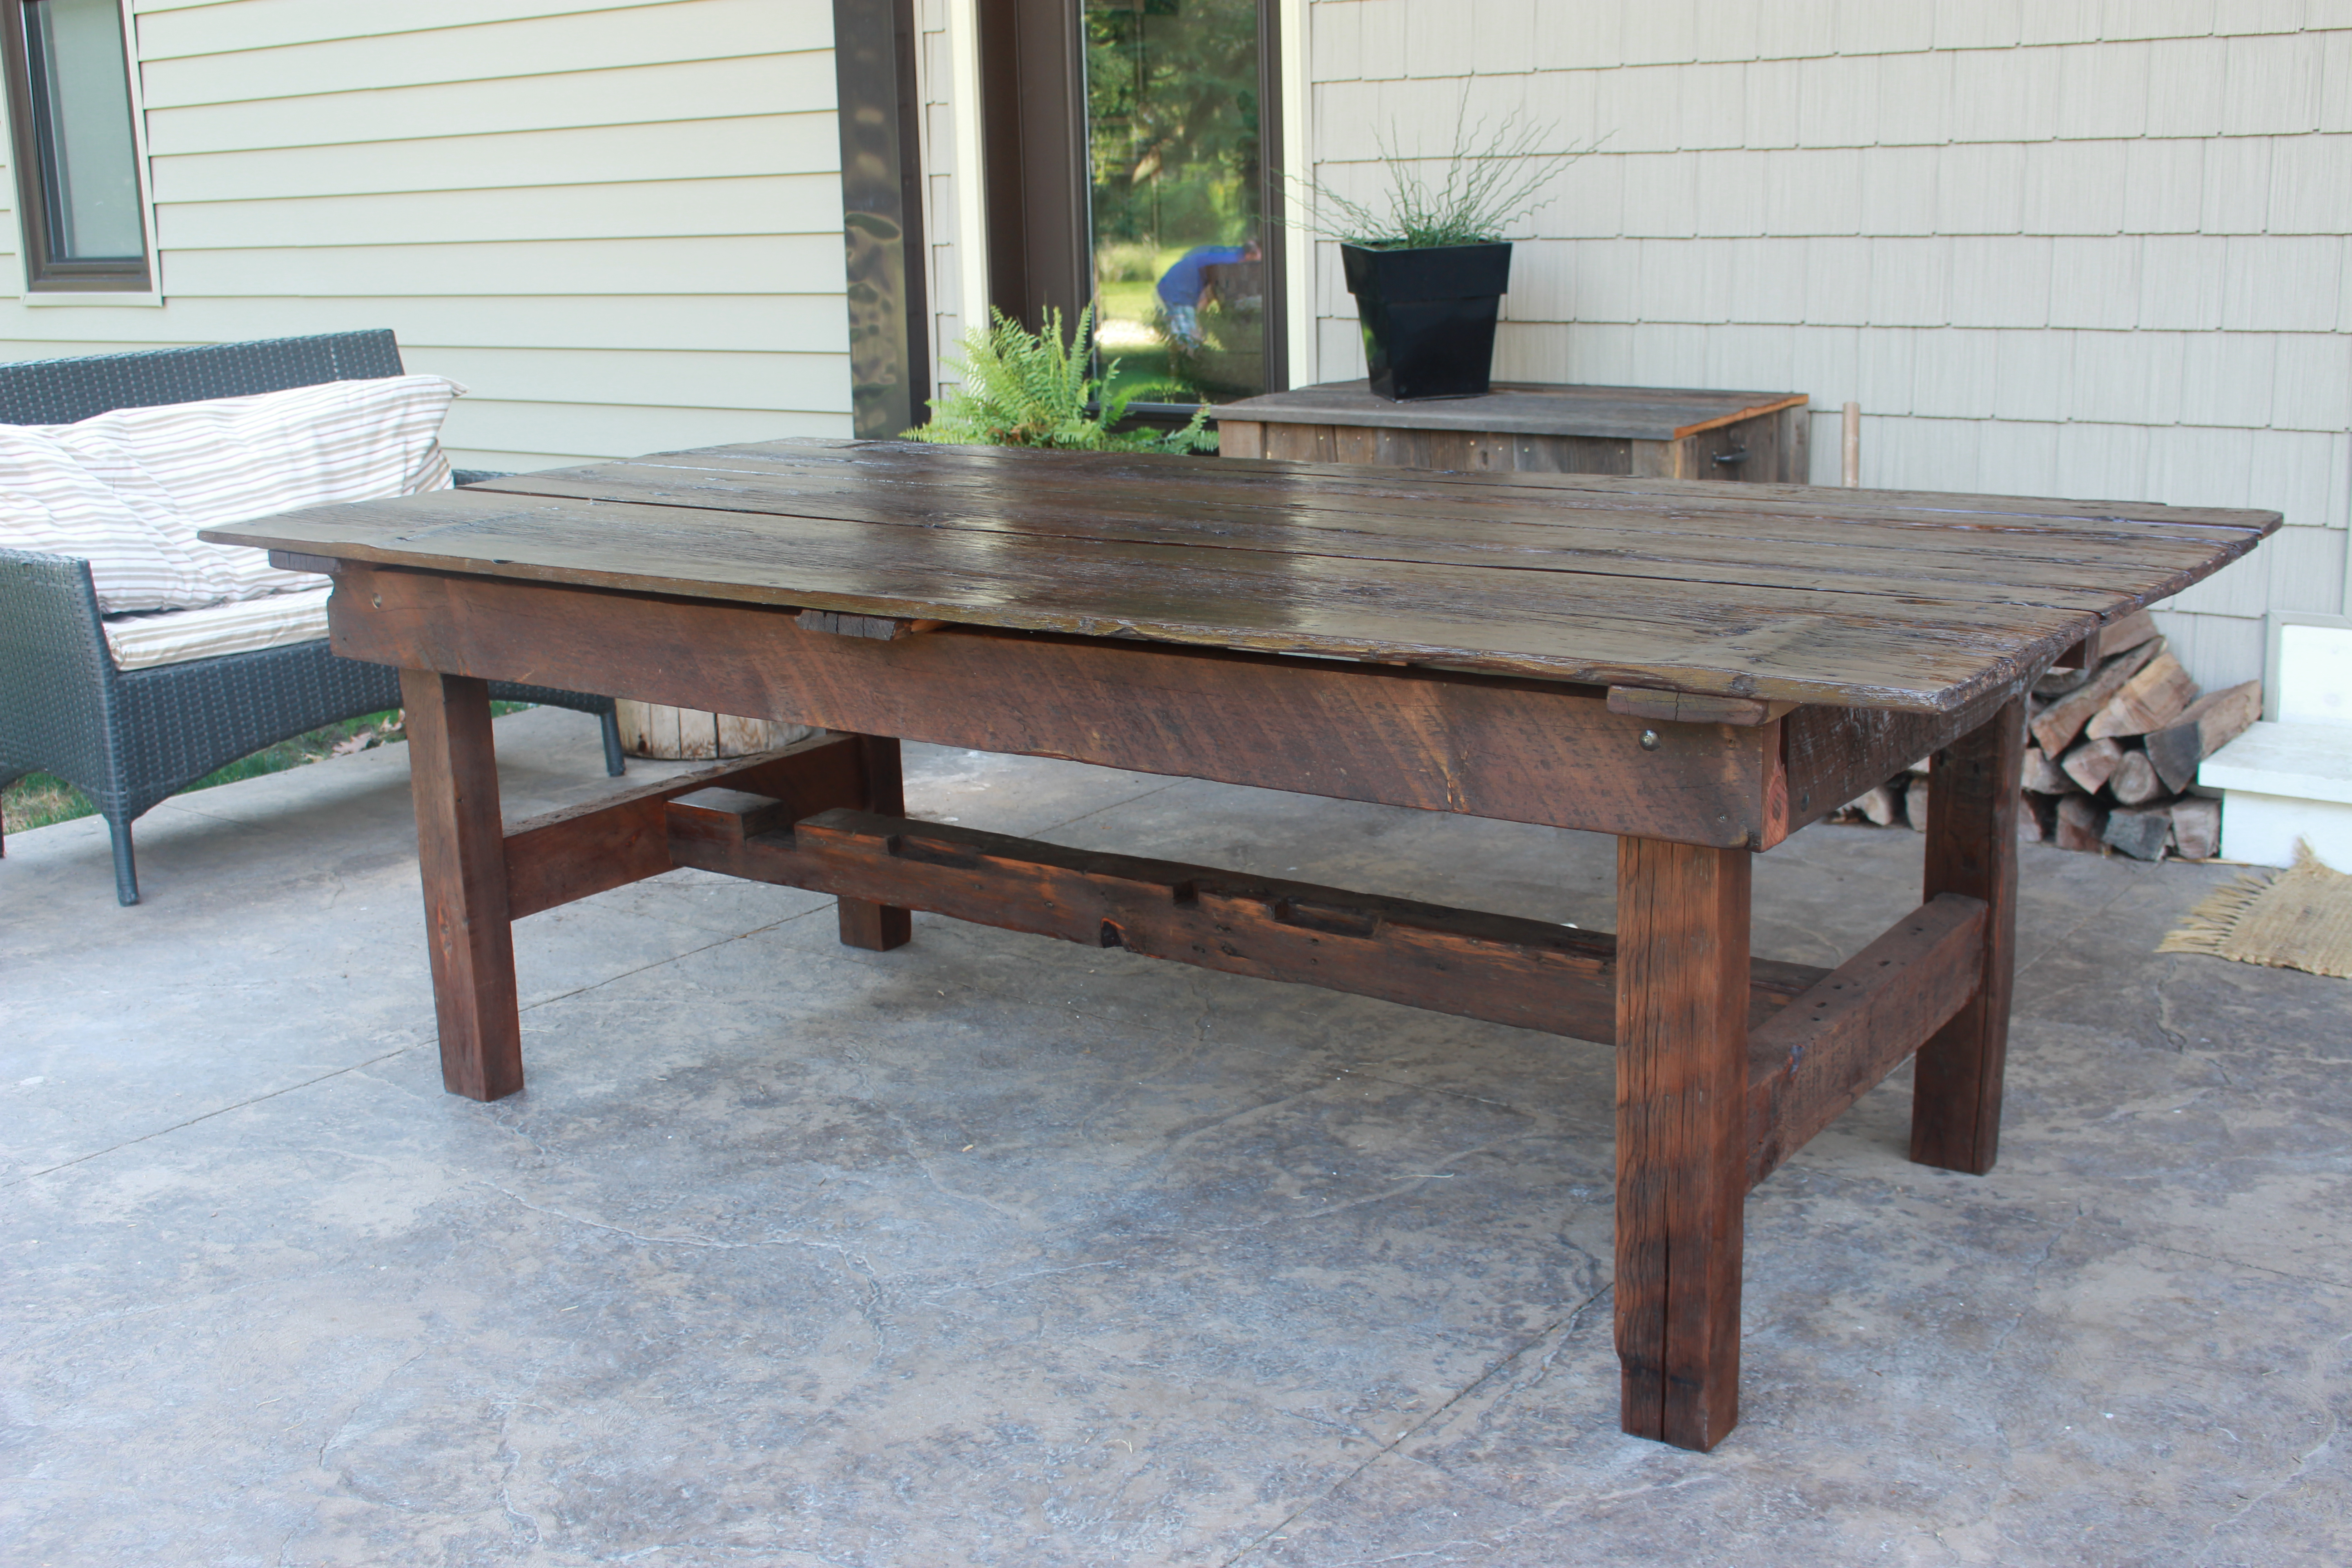 Barn Door Harvest Table